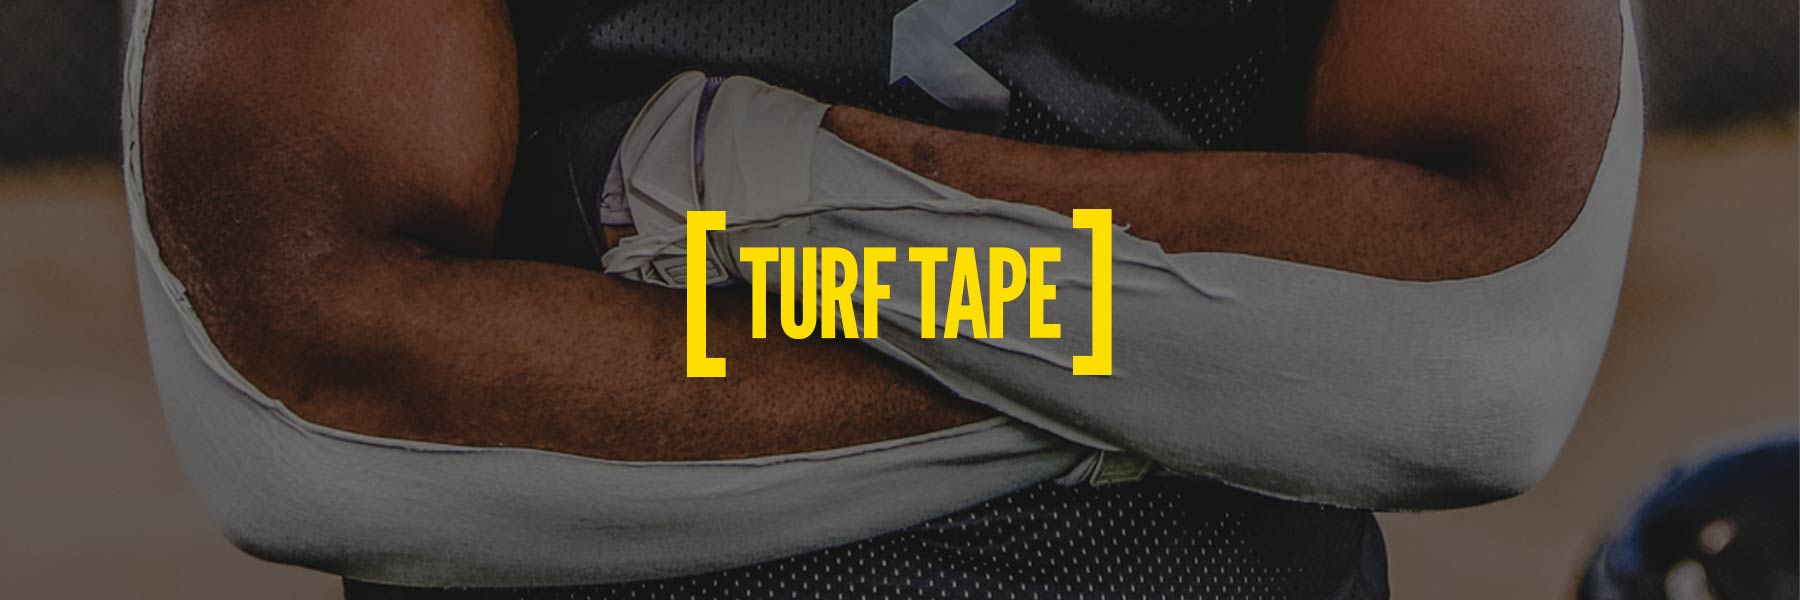 Football Turf Tape For Arms